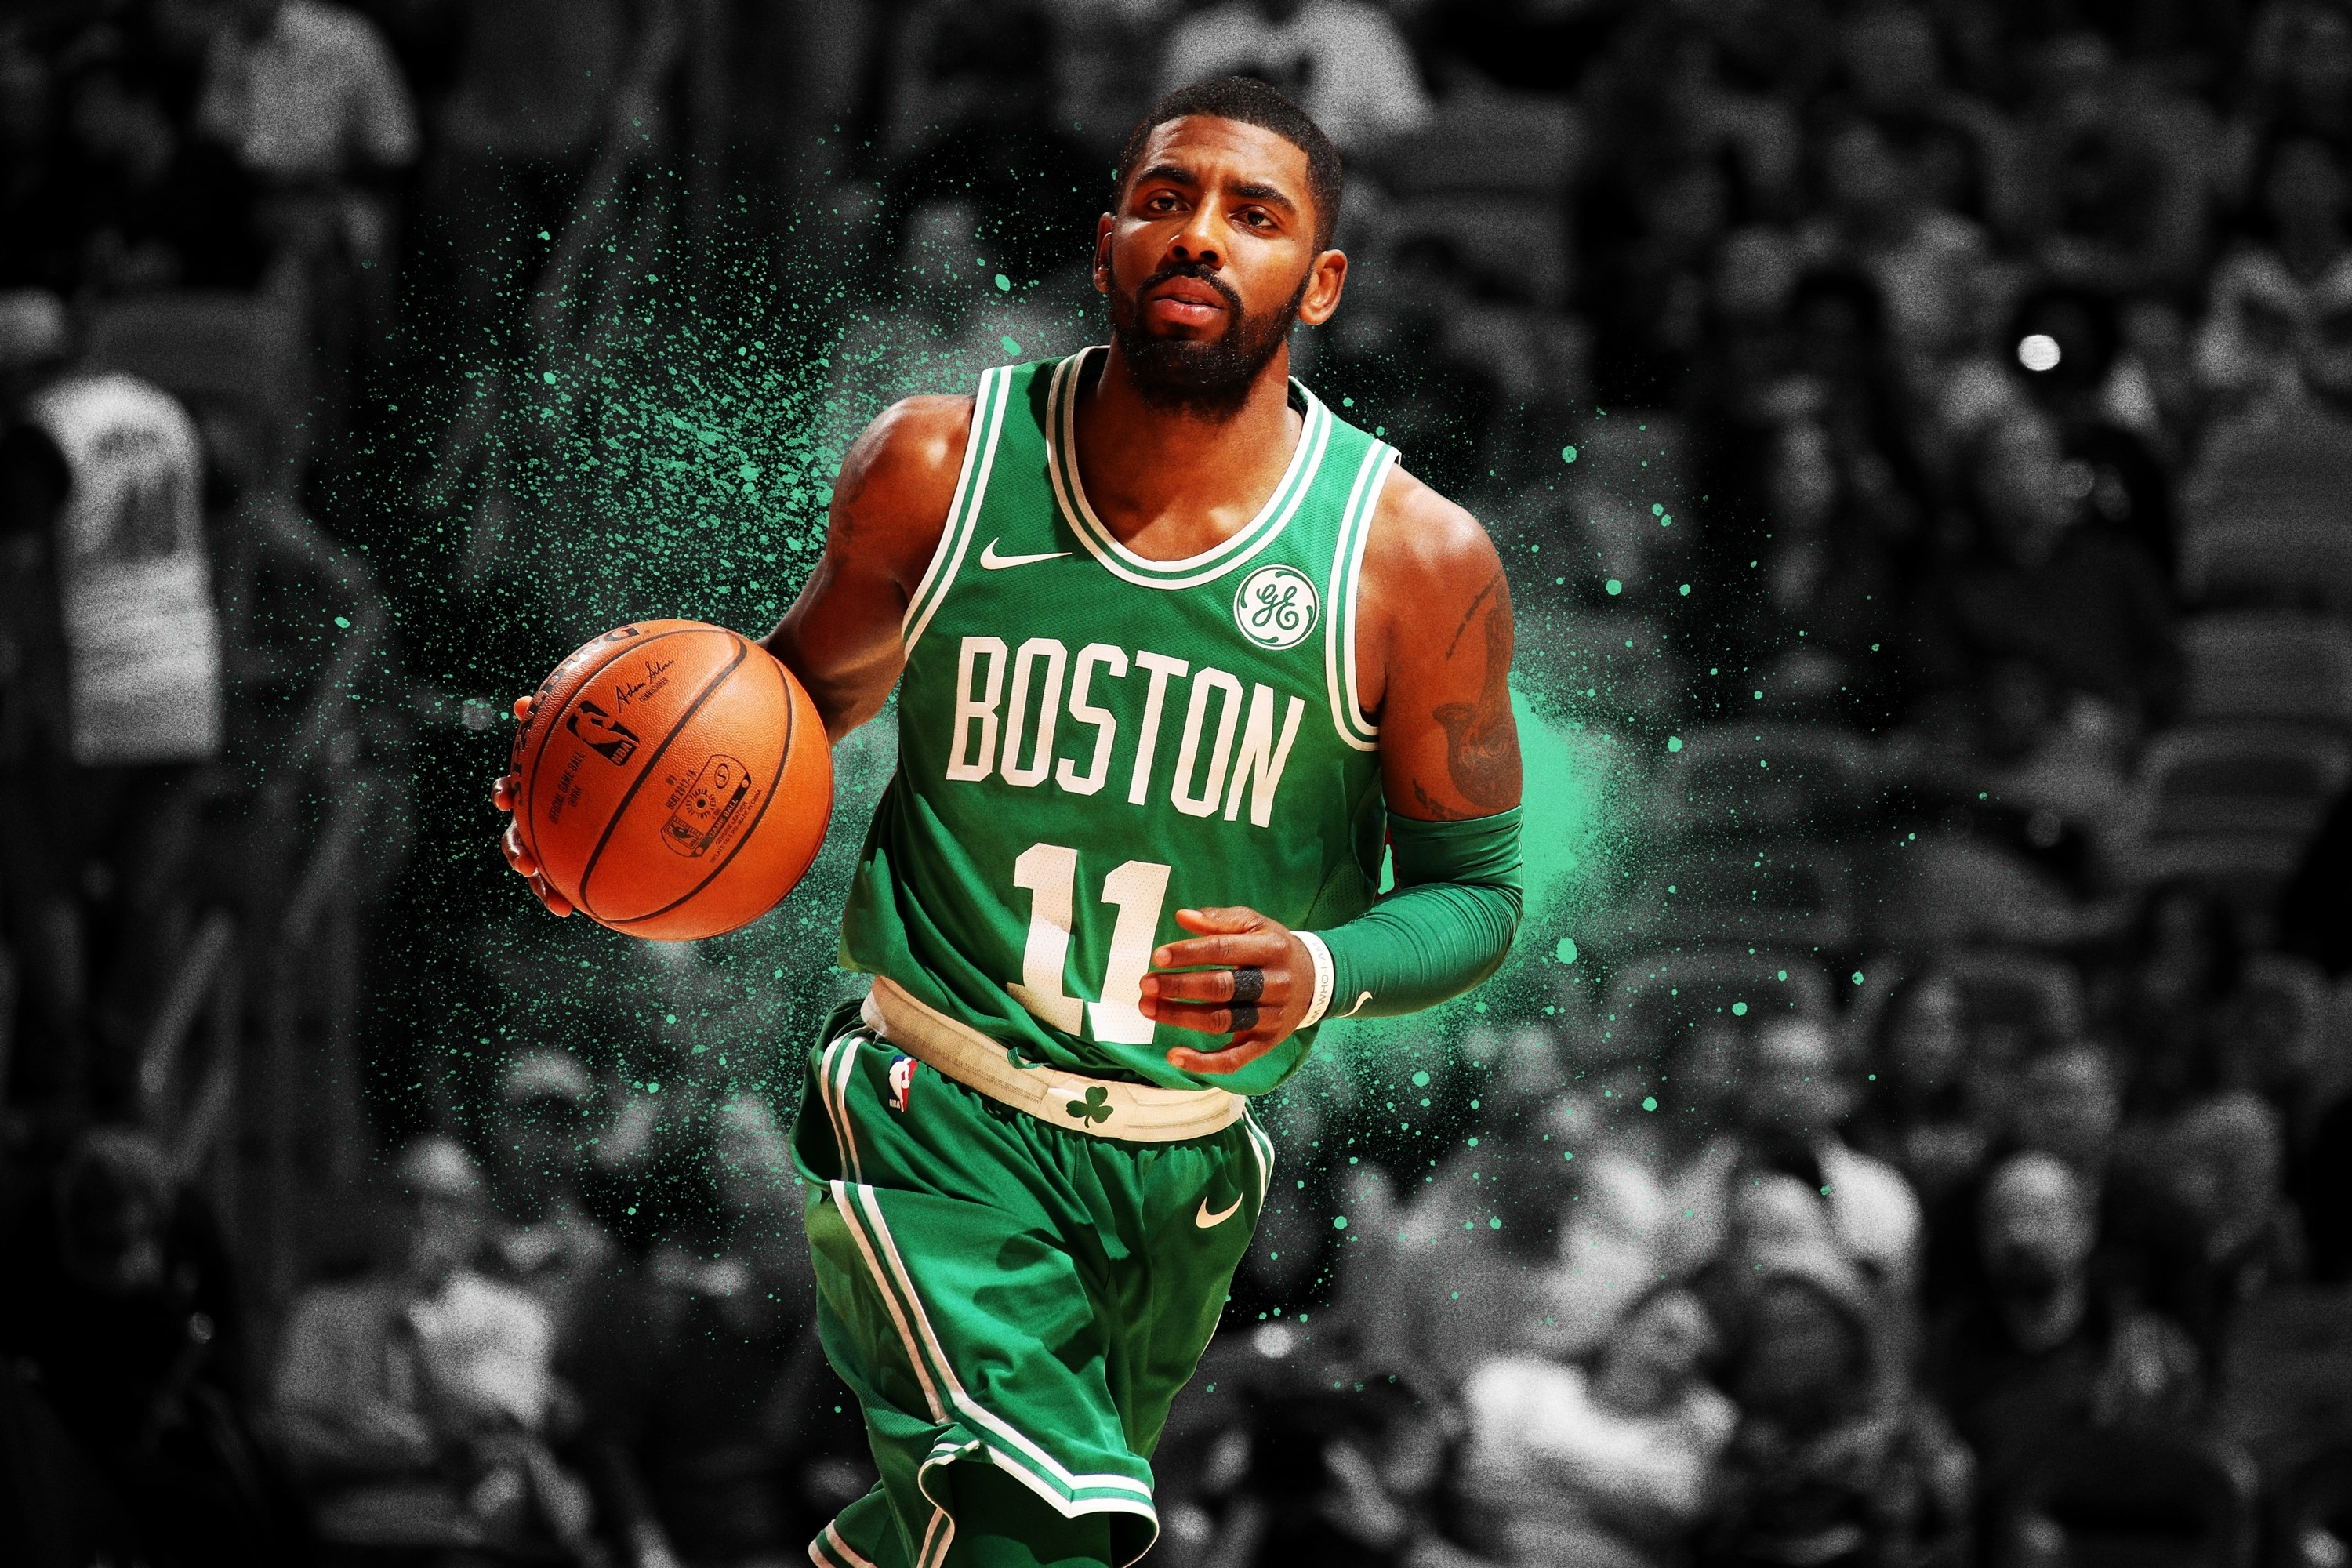 kyrie irving, hd sports, 4k wallpapers, images, backgrounds, photos